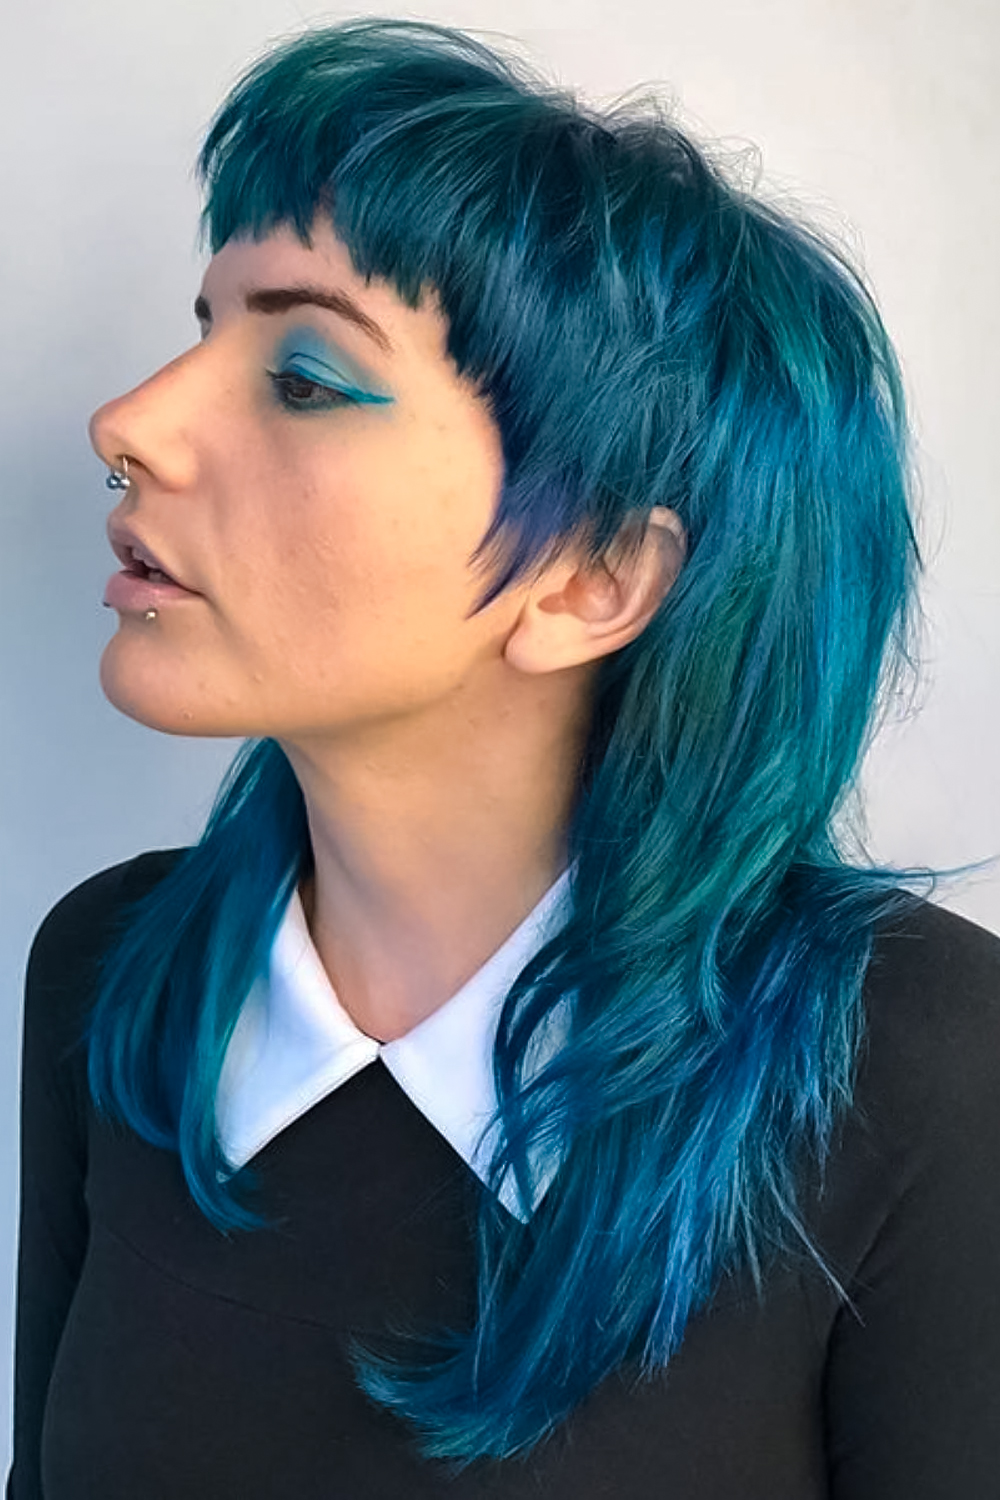 woman with dyed edgy mullet haircut is posing on plain background